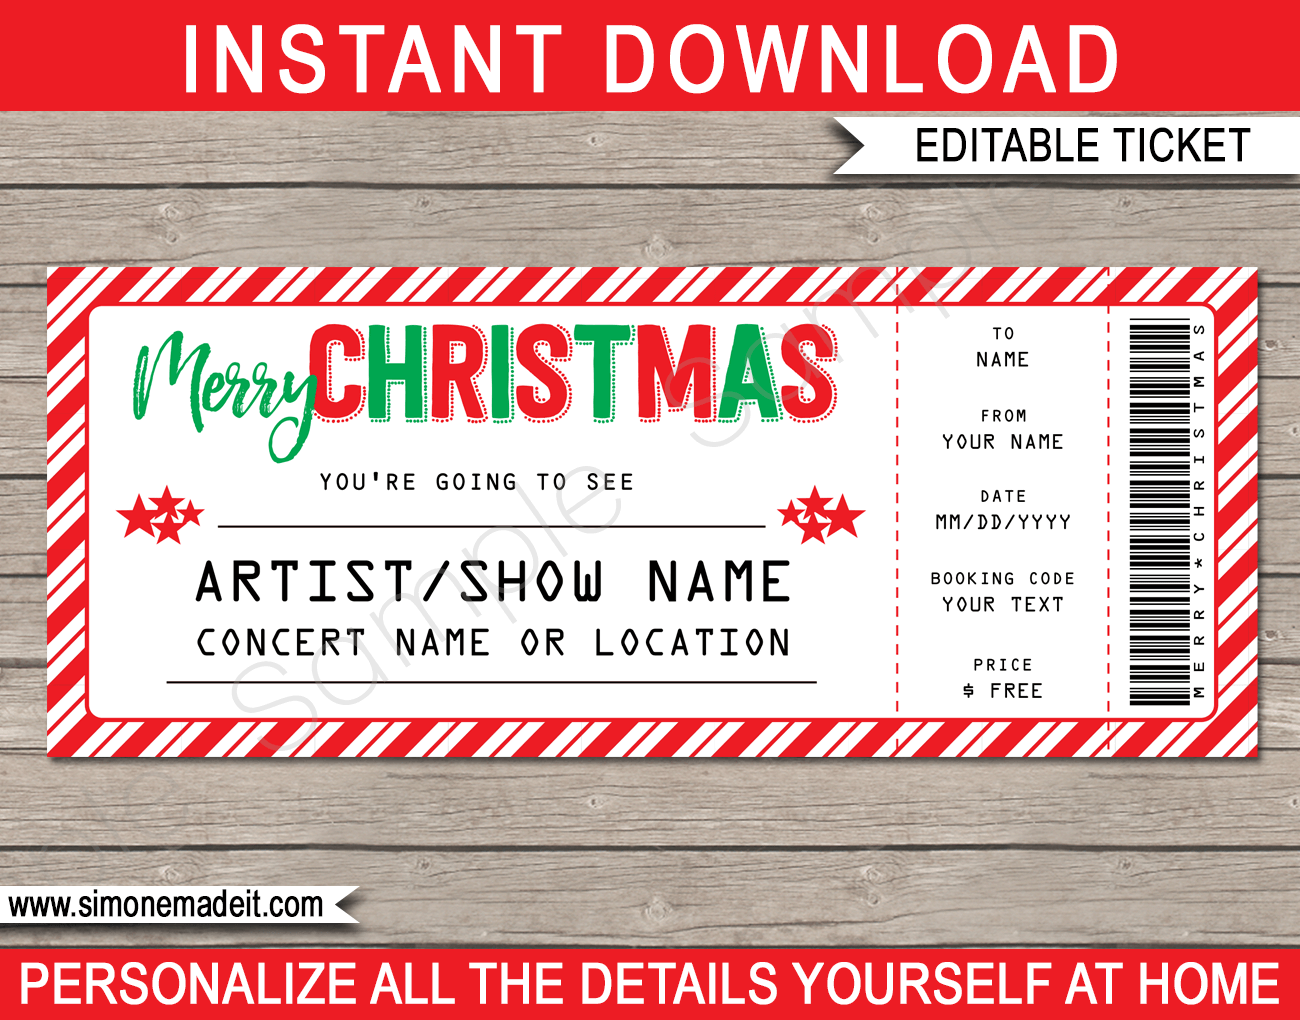 Concert Ticket Template Free Download Glamorous Christmas Gift Concert Ticket Template  Red Green & White .